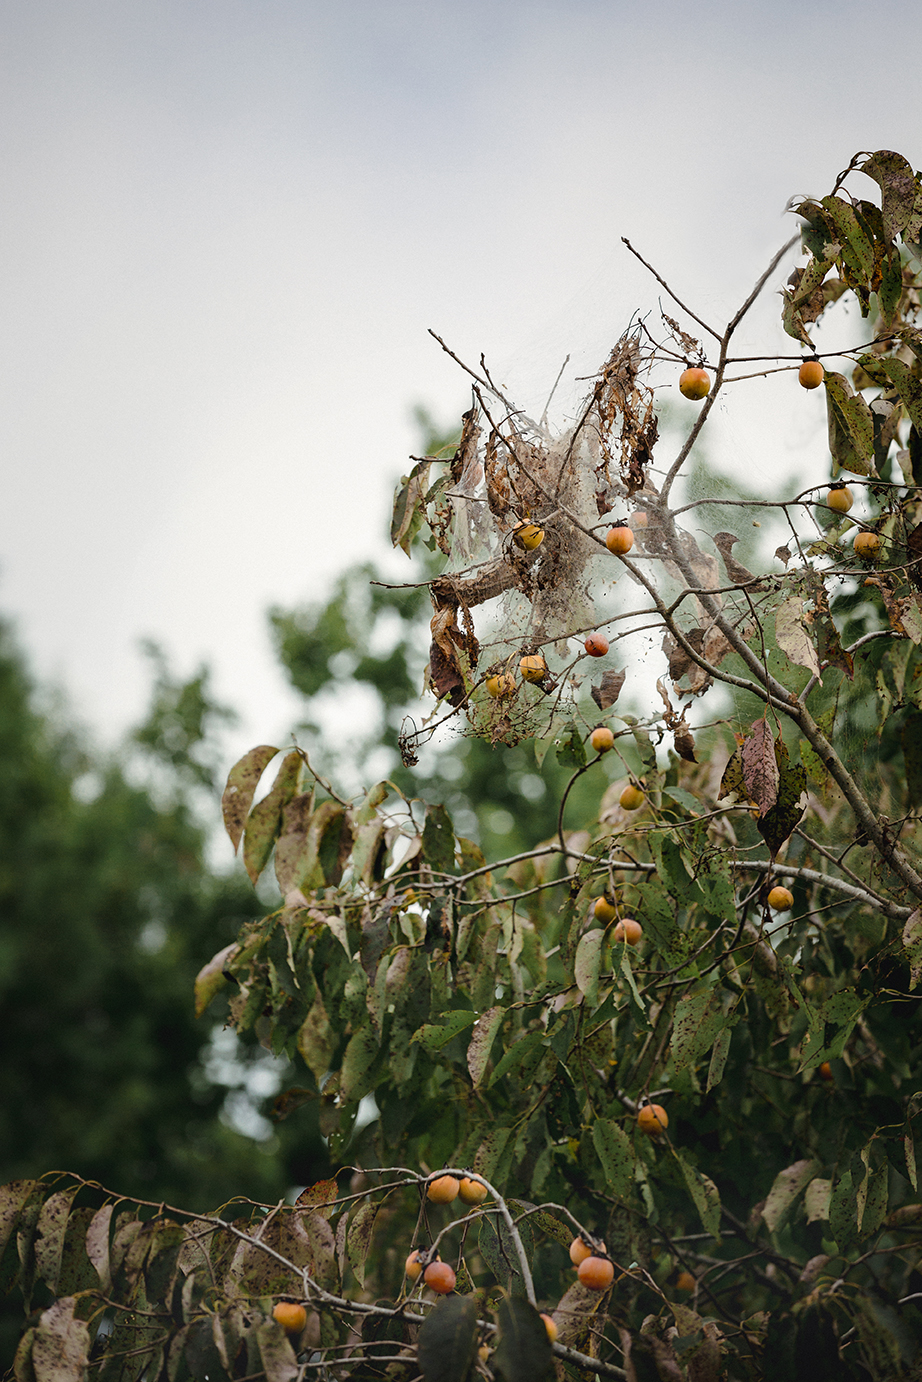 Persimmons_CourthouseRoad_0001.jpg